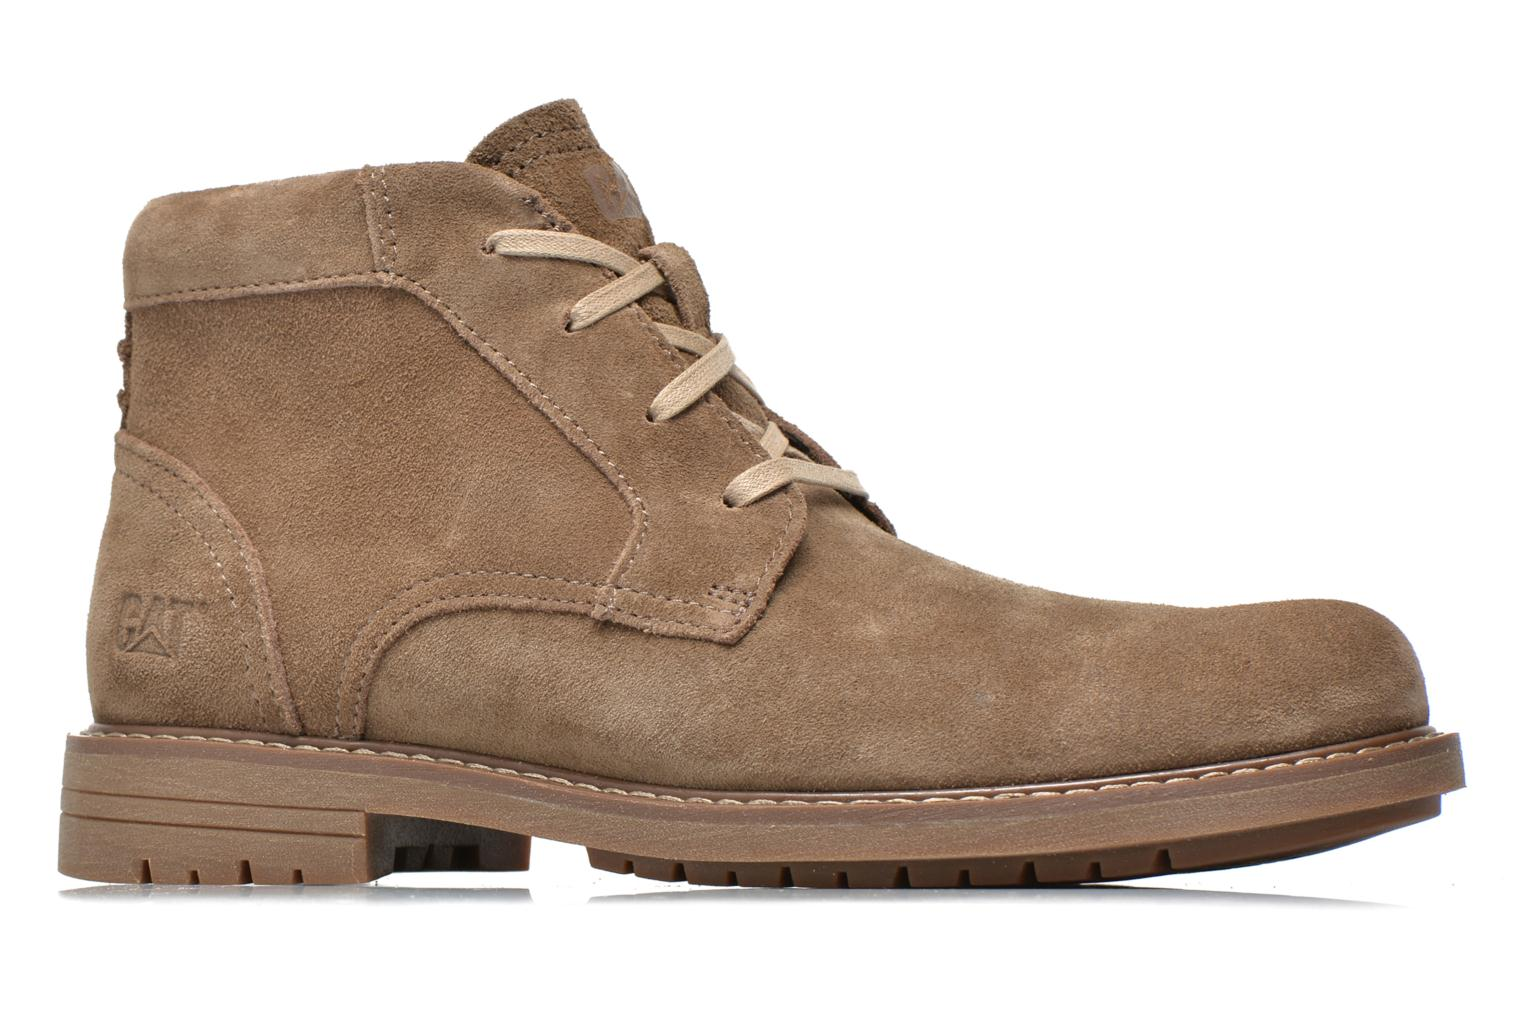 Bottines et boots Caterpillar Brock Marron vue derrière